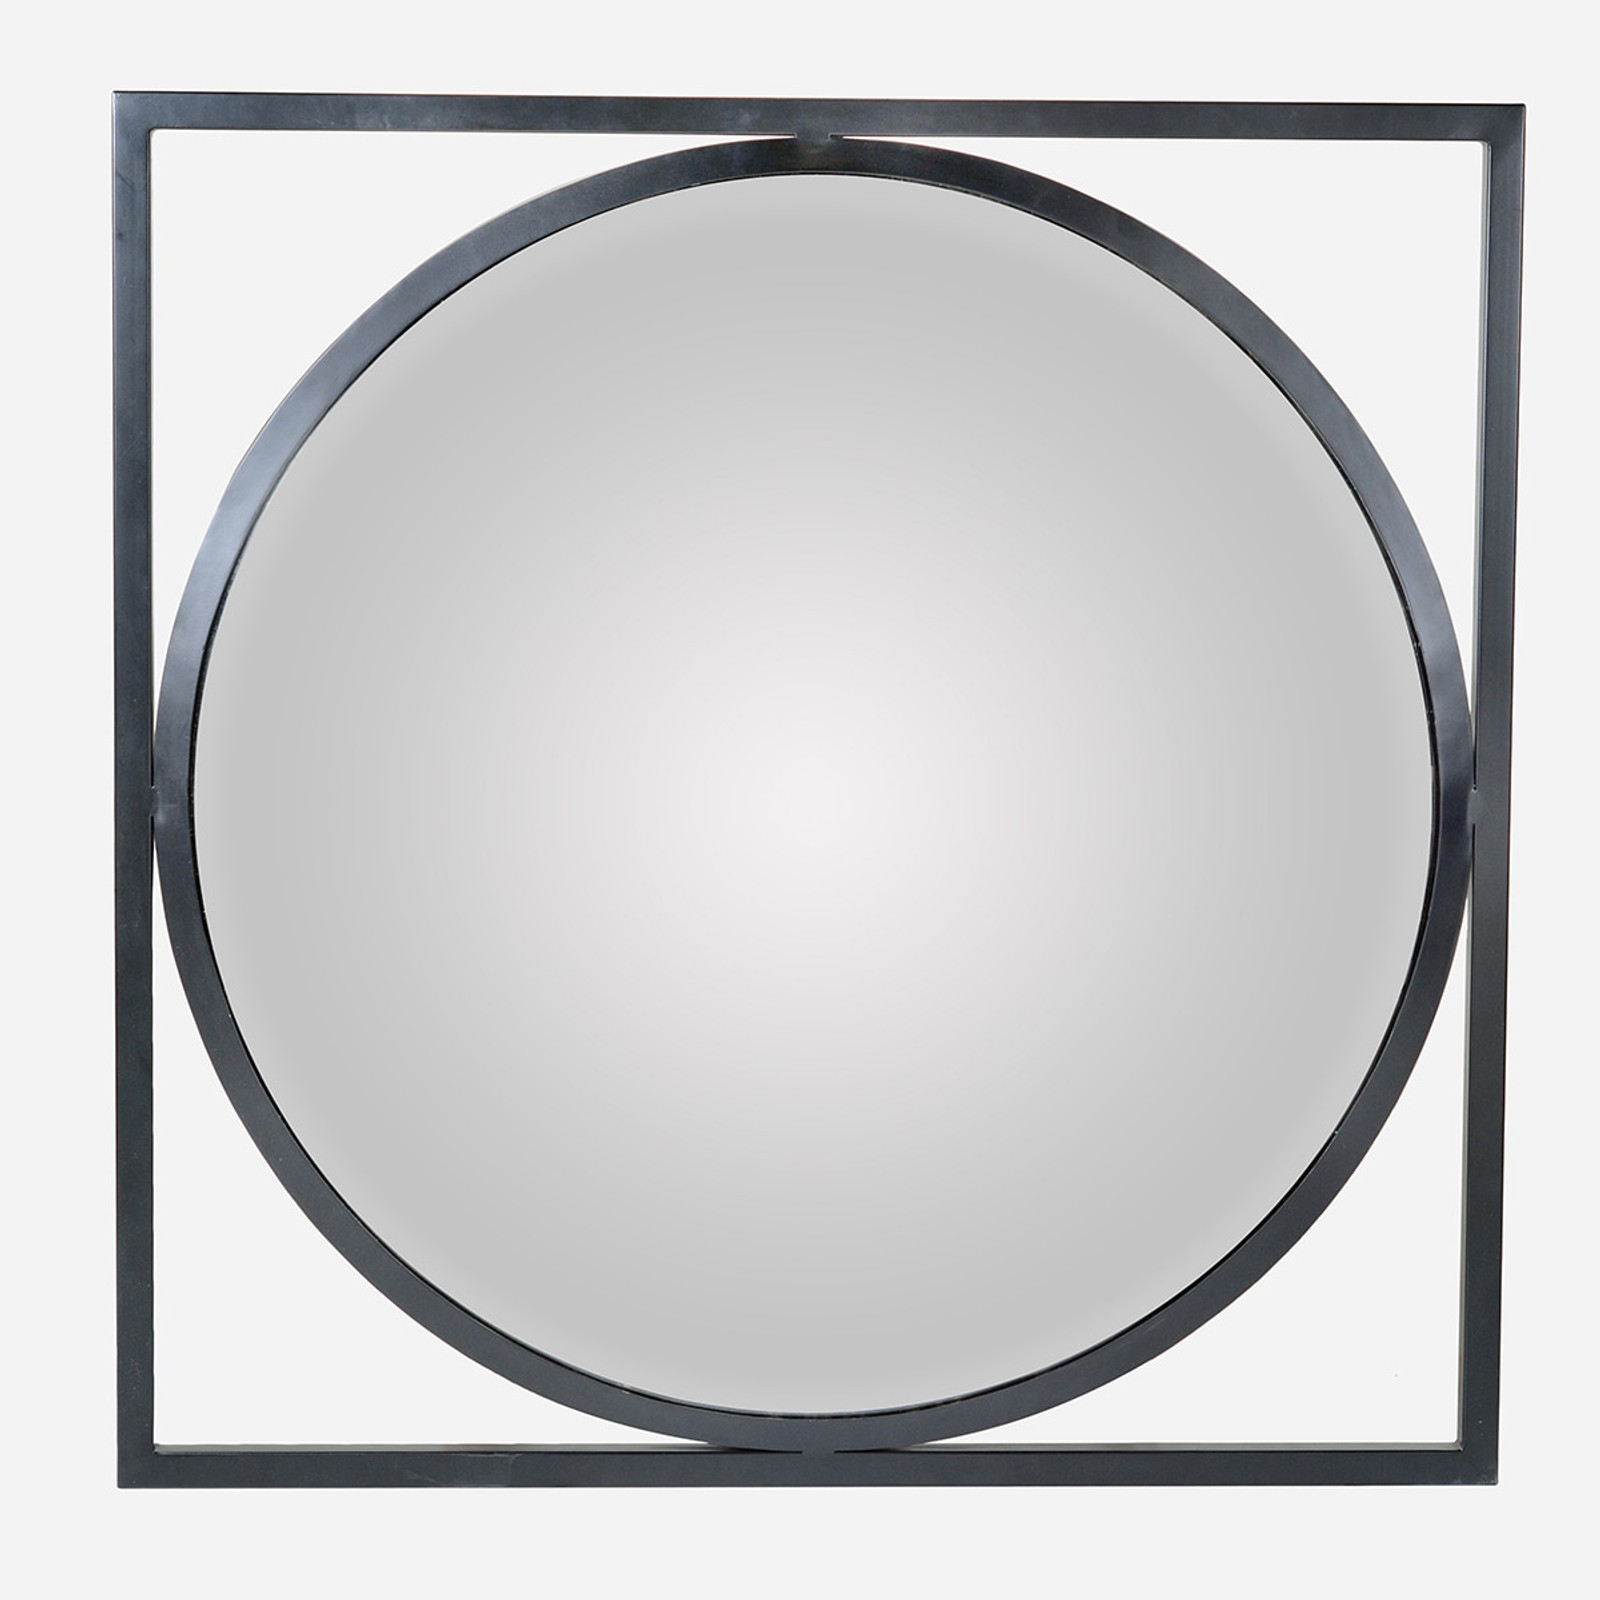 Convex Mirror in Frame